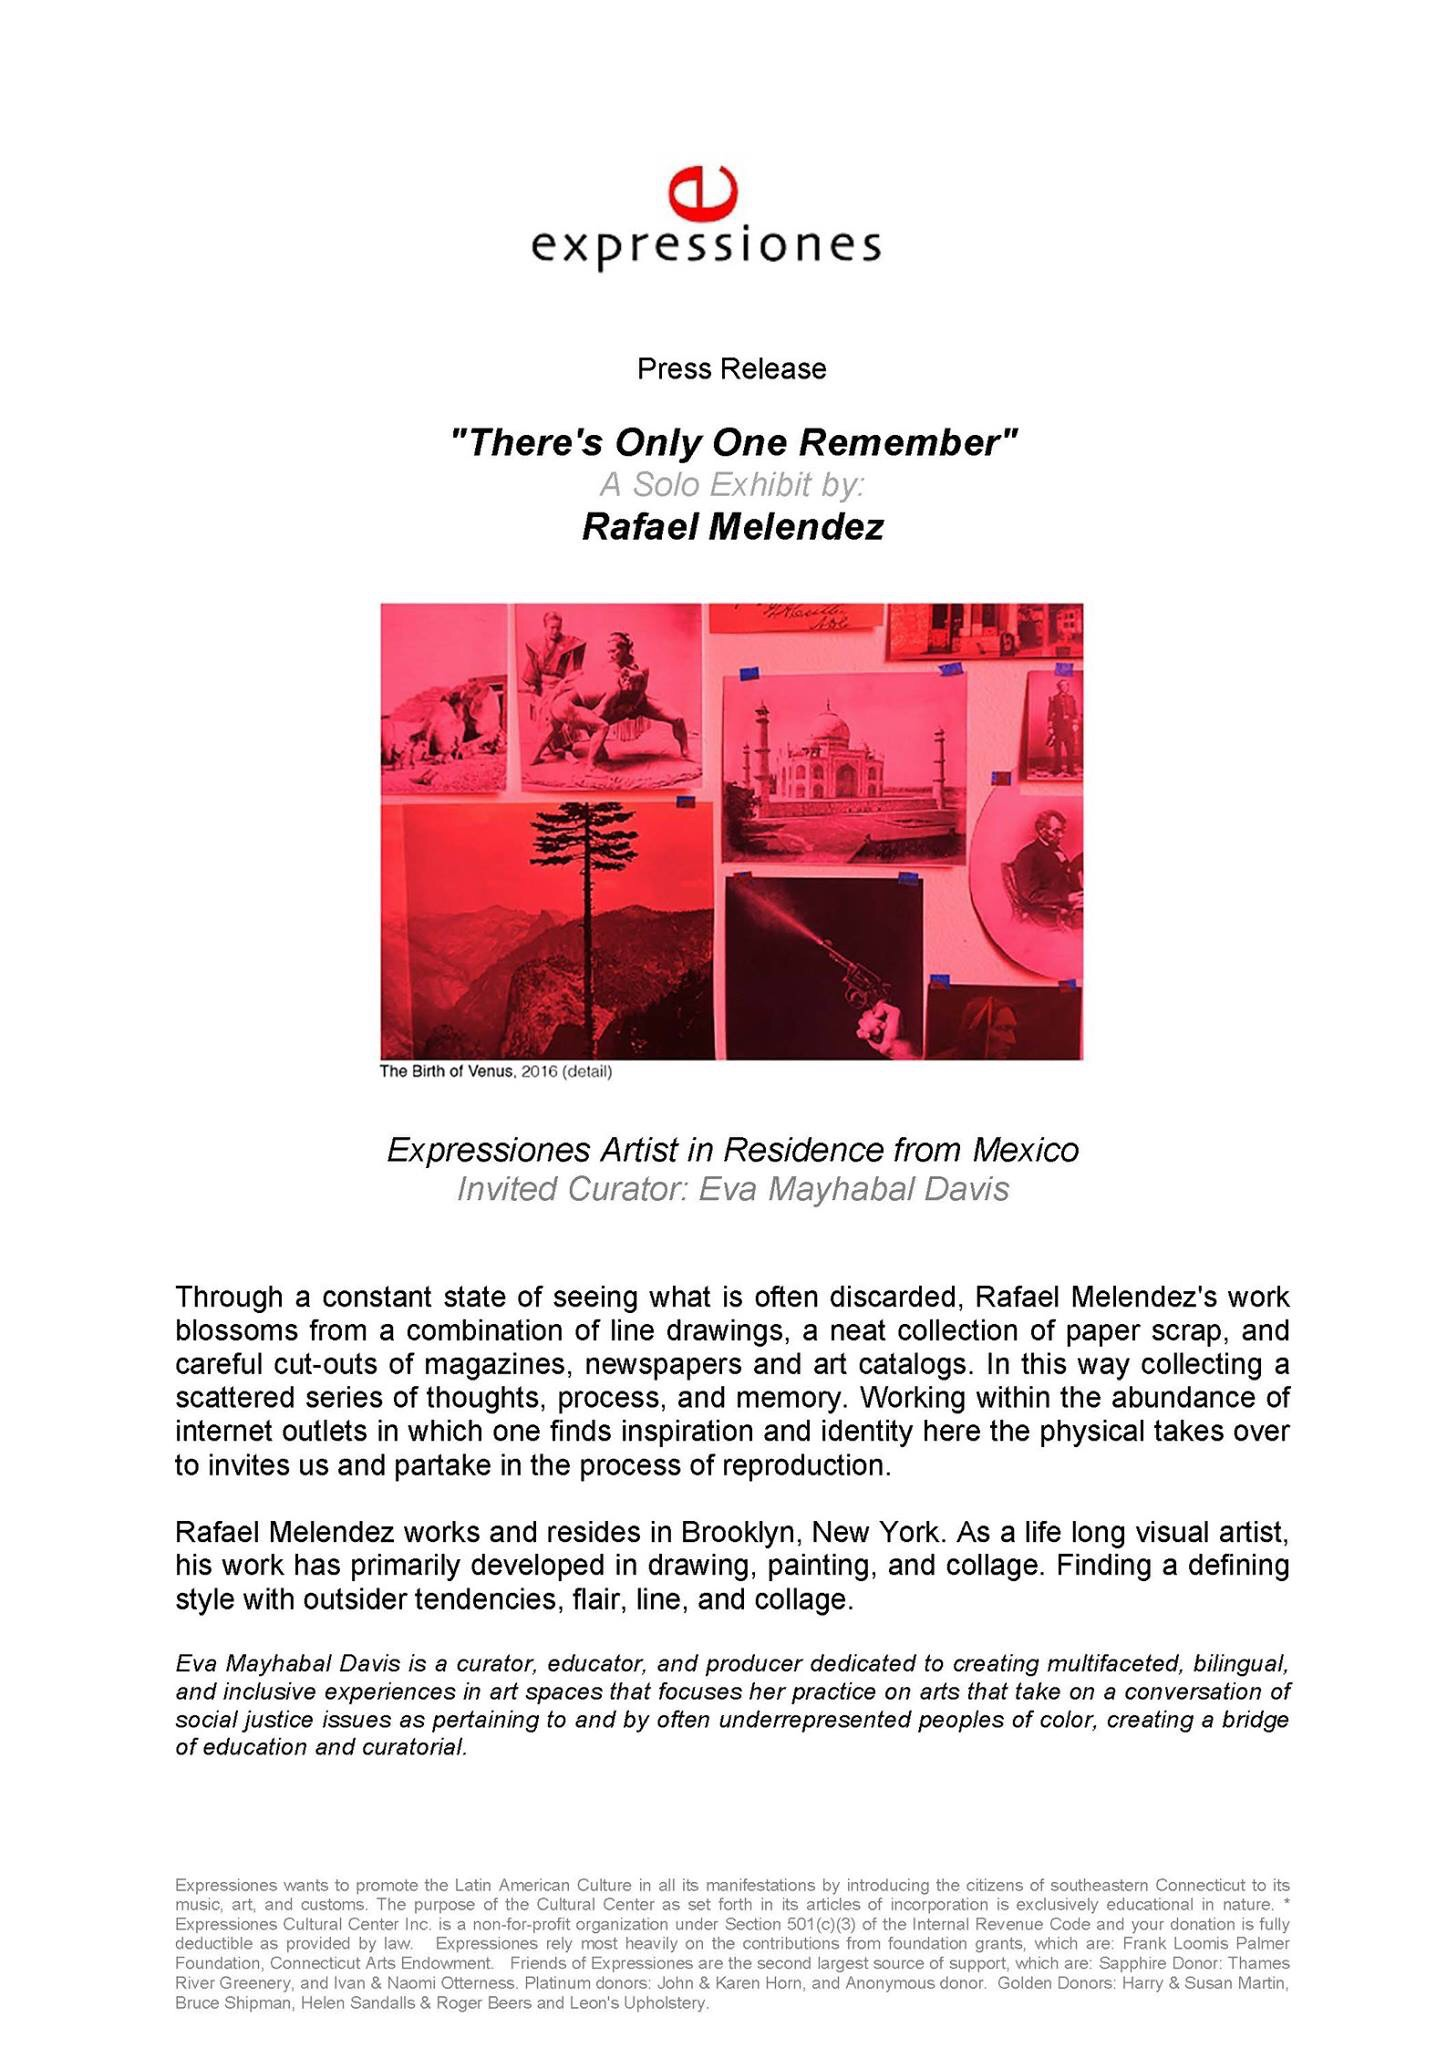 Press Release Rafael Melendez There's Only One Remember  Opening April 29th Expressiones Cultural Center